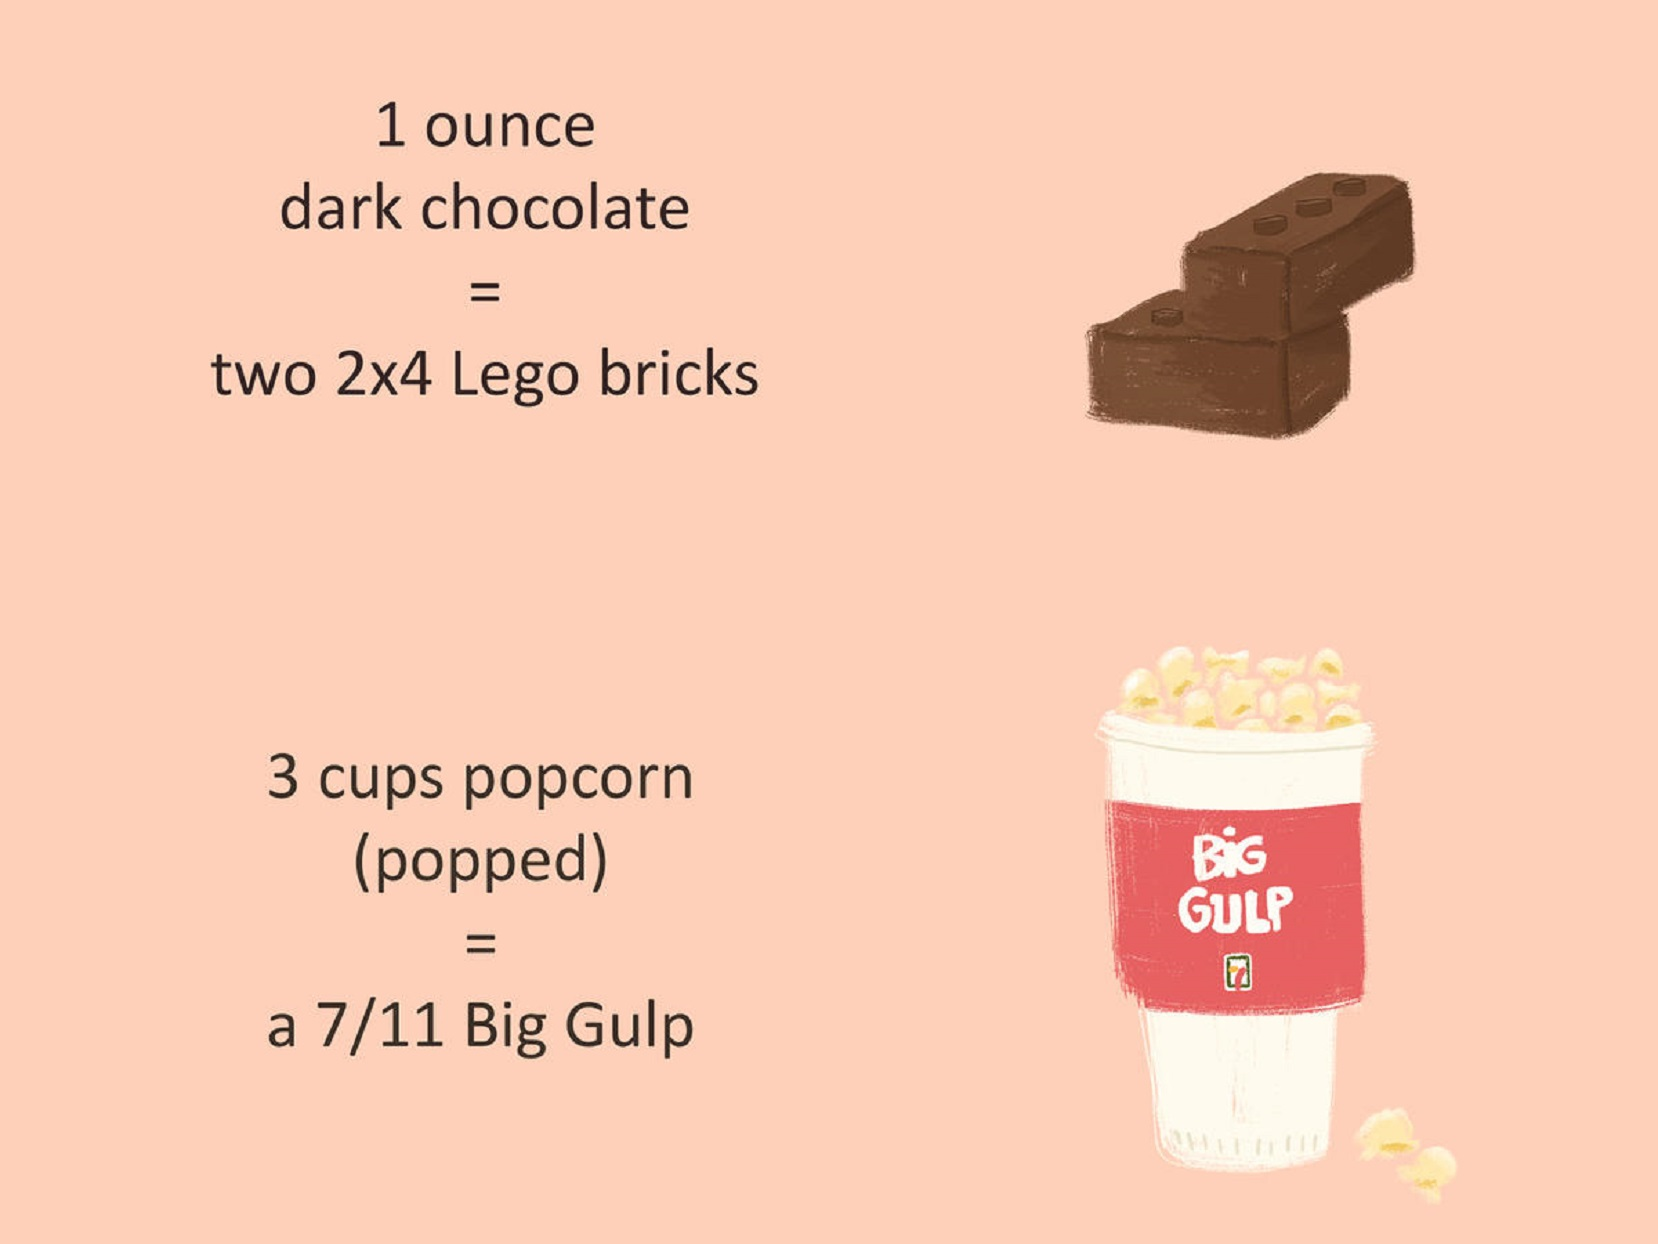 Dairy and Treats Serving Size Guide Illustration